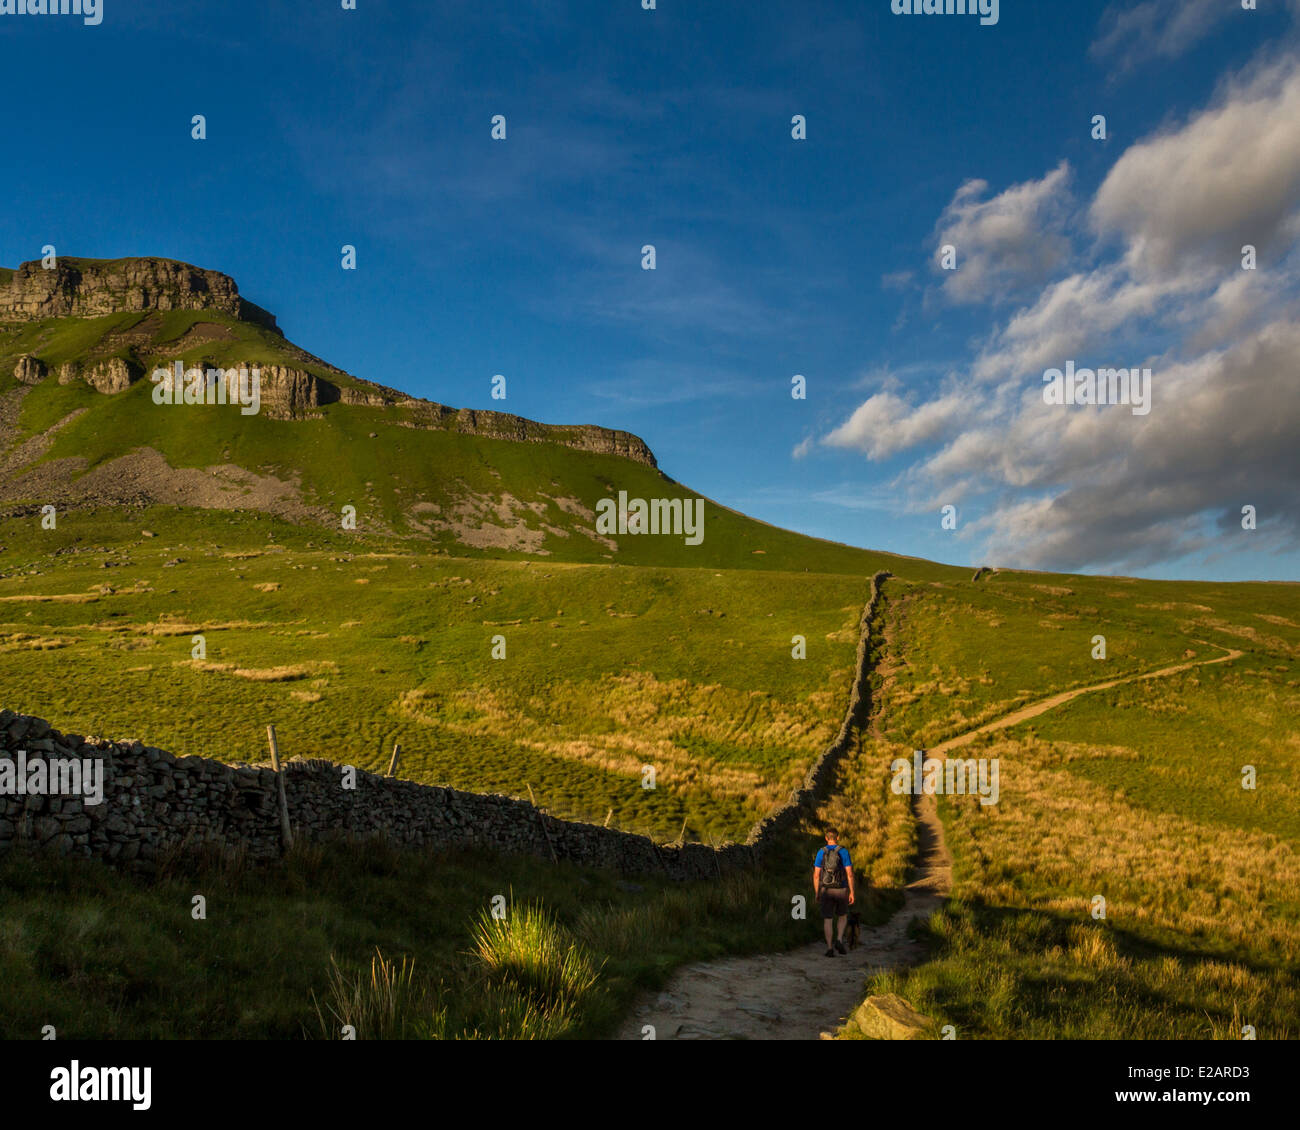 Walker on early morning ascent of Pen-y-Ghent mountain, Yorkshire Dales scene, UK - Stock Image